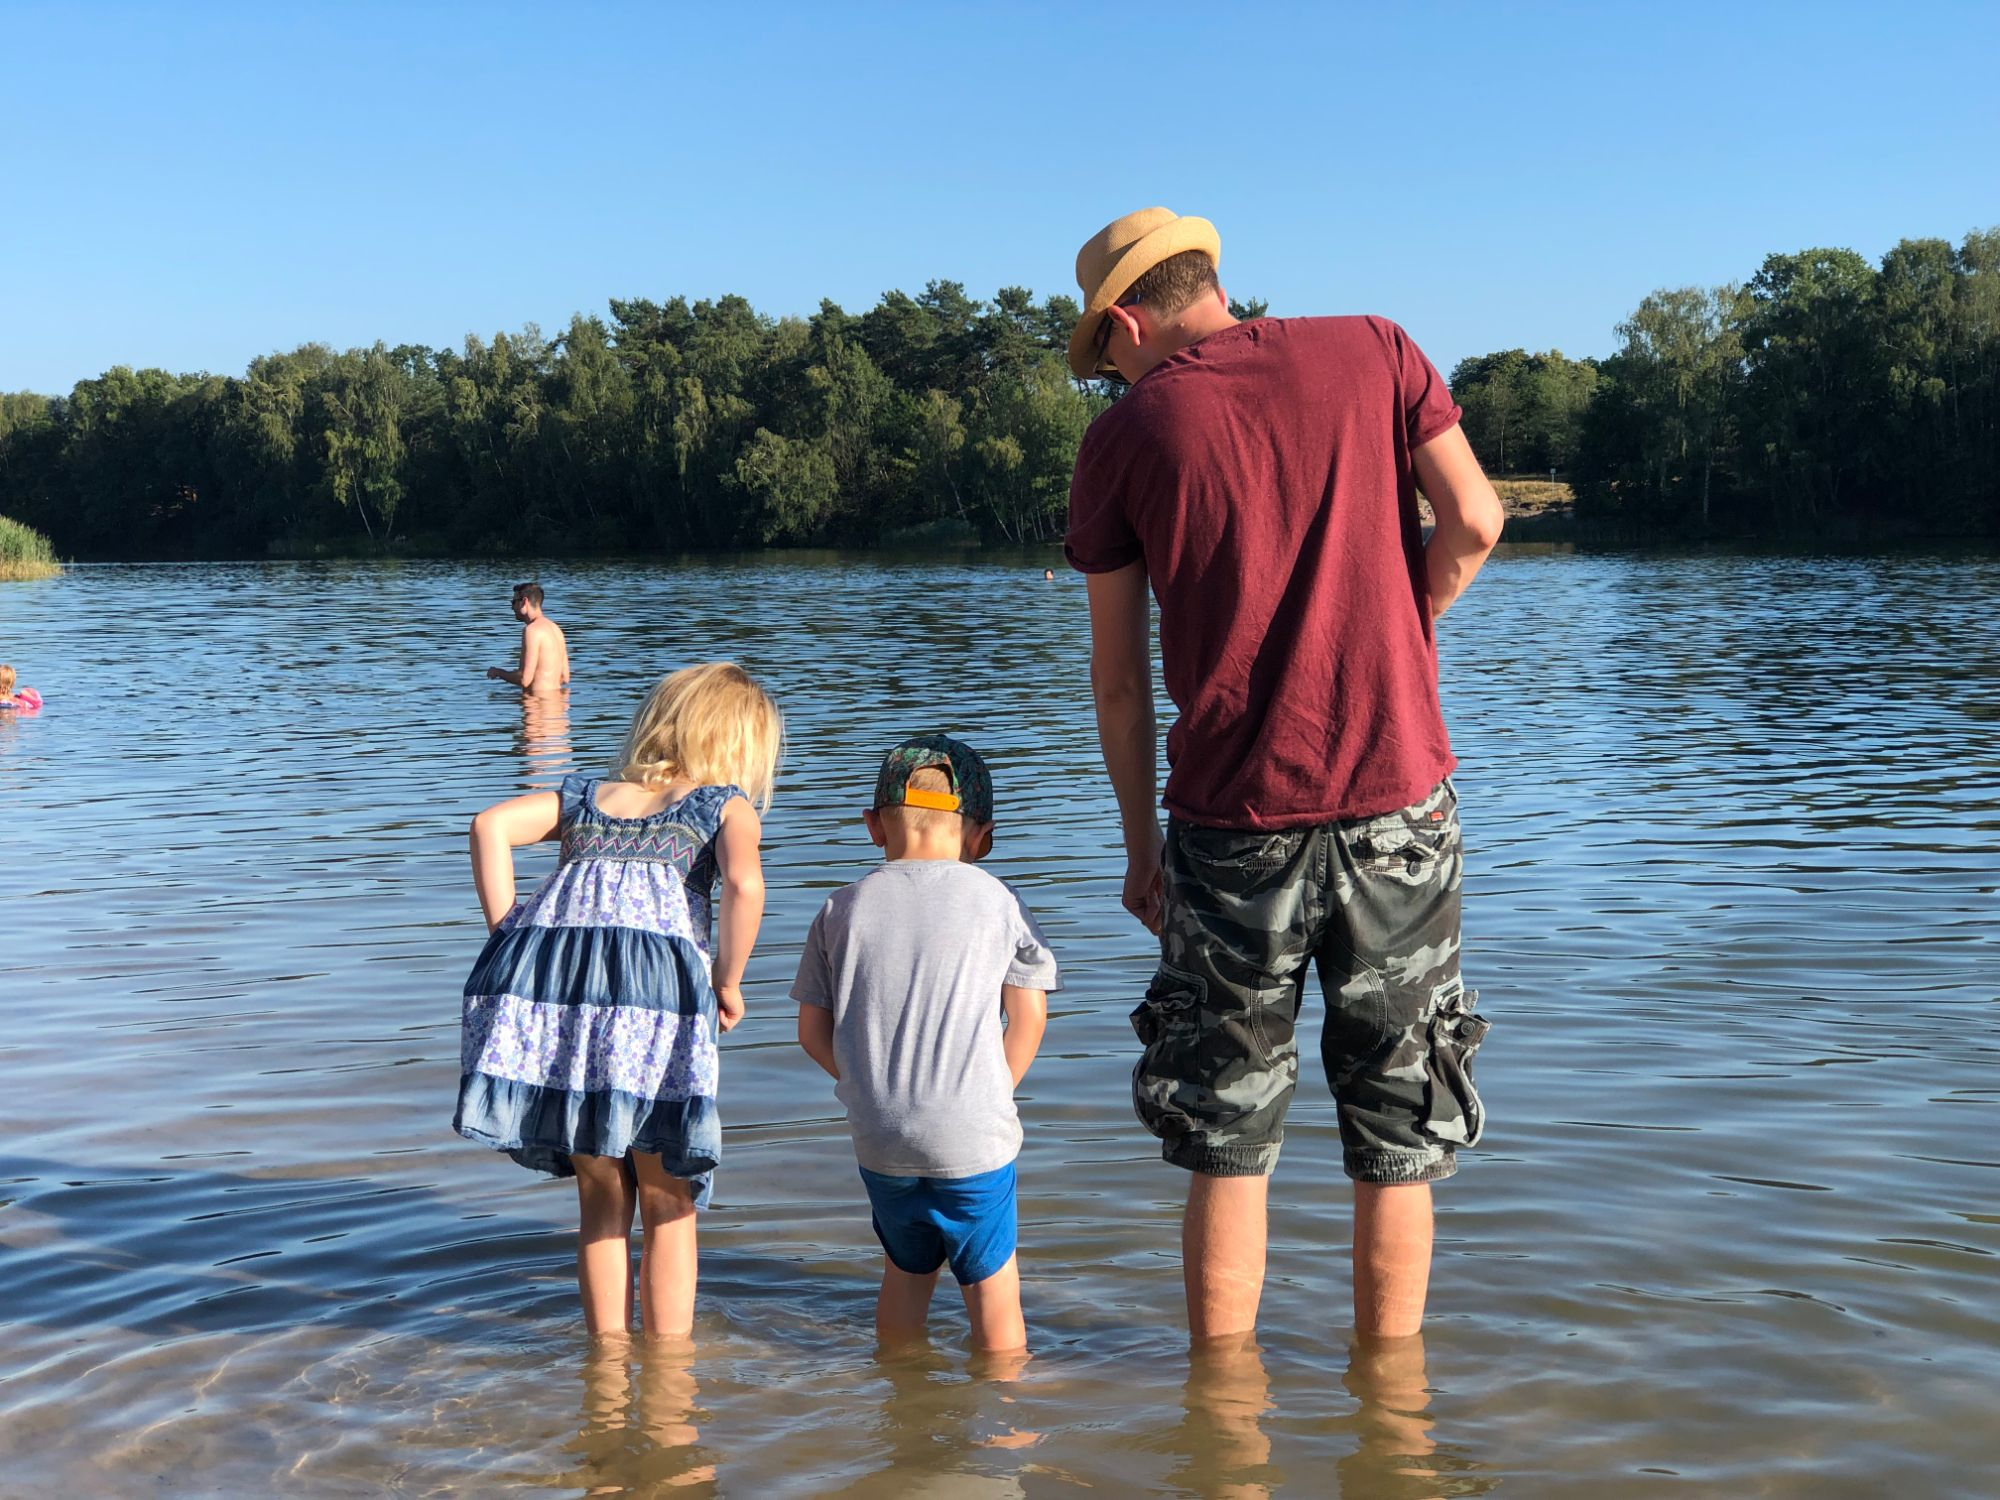 Free stock photo family holiday paddle lake beach